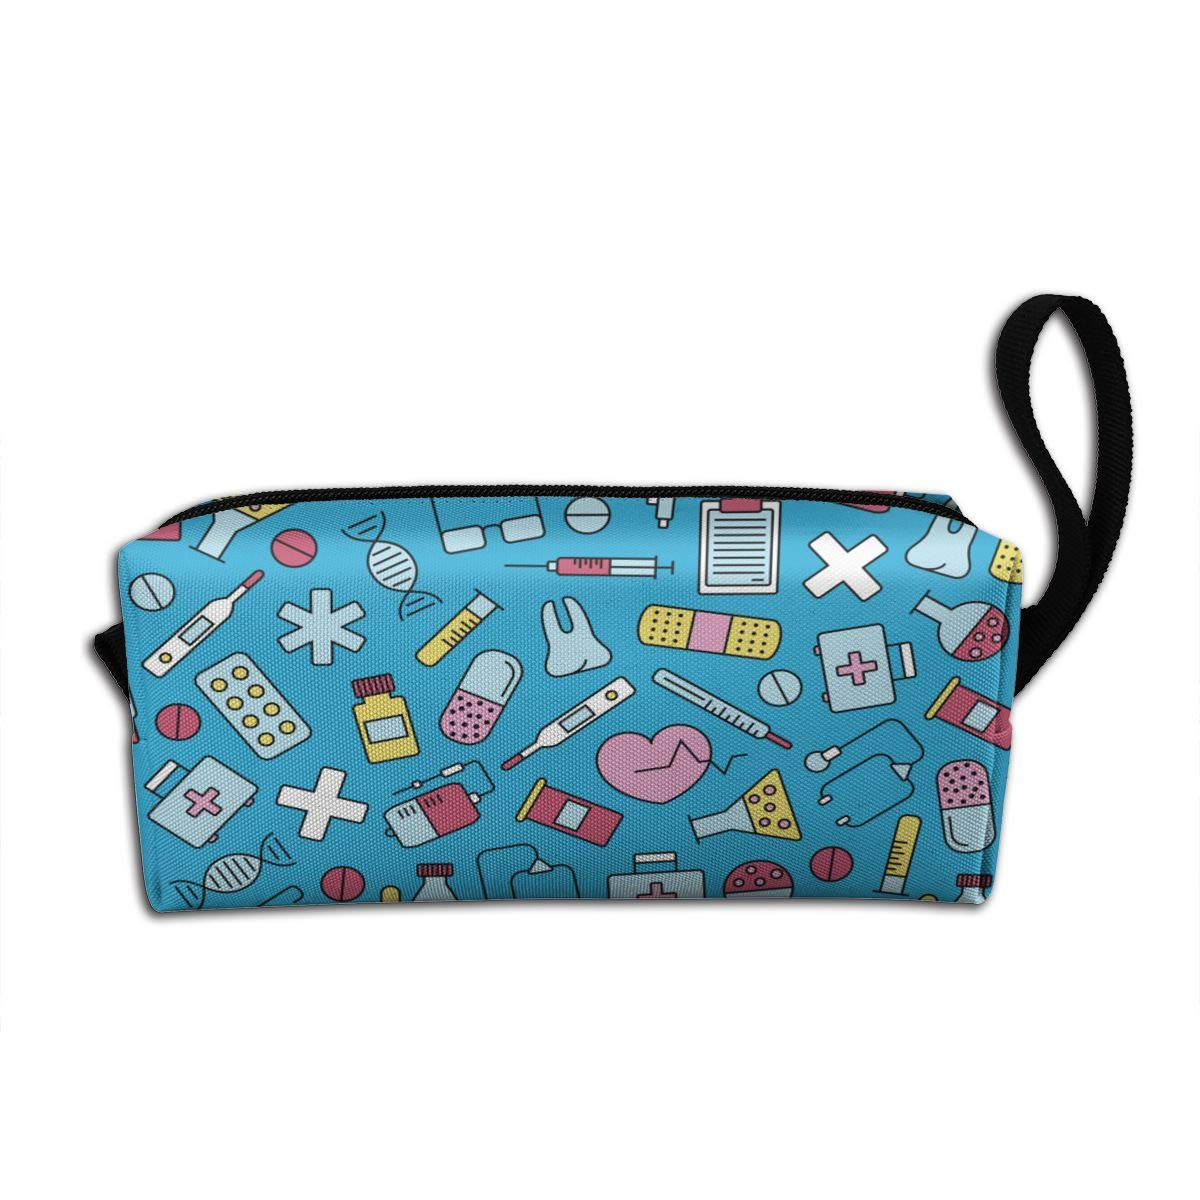 Nurse Equipment Makeup Bag Adorable Travel Cosmetic Pouch Toiletry Organizer Case Gift for Women